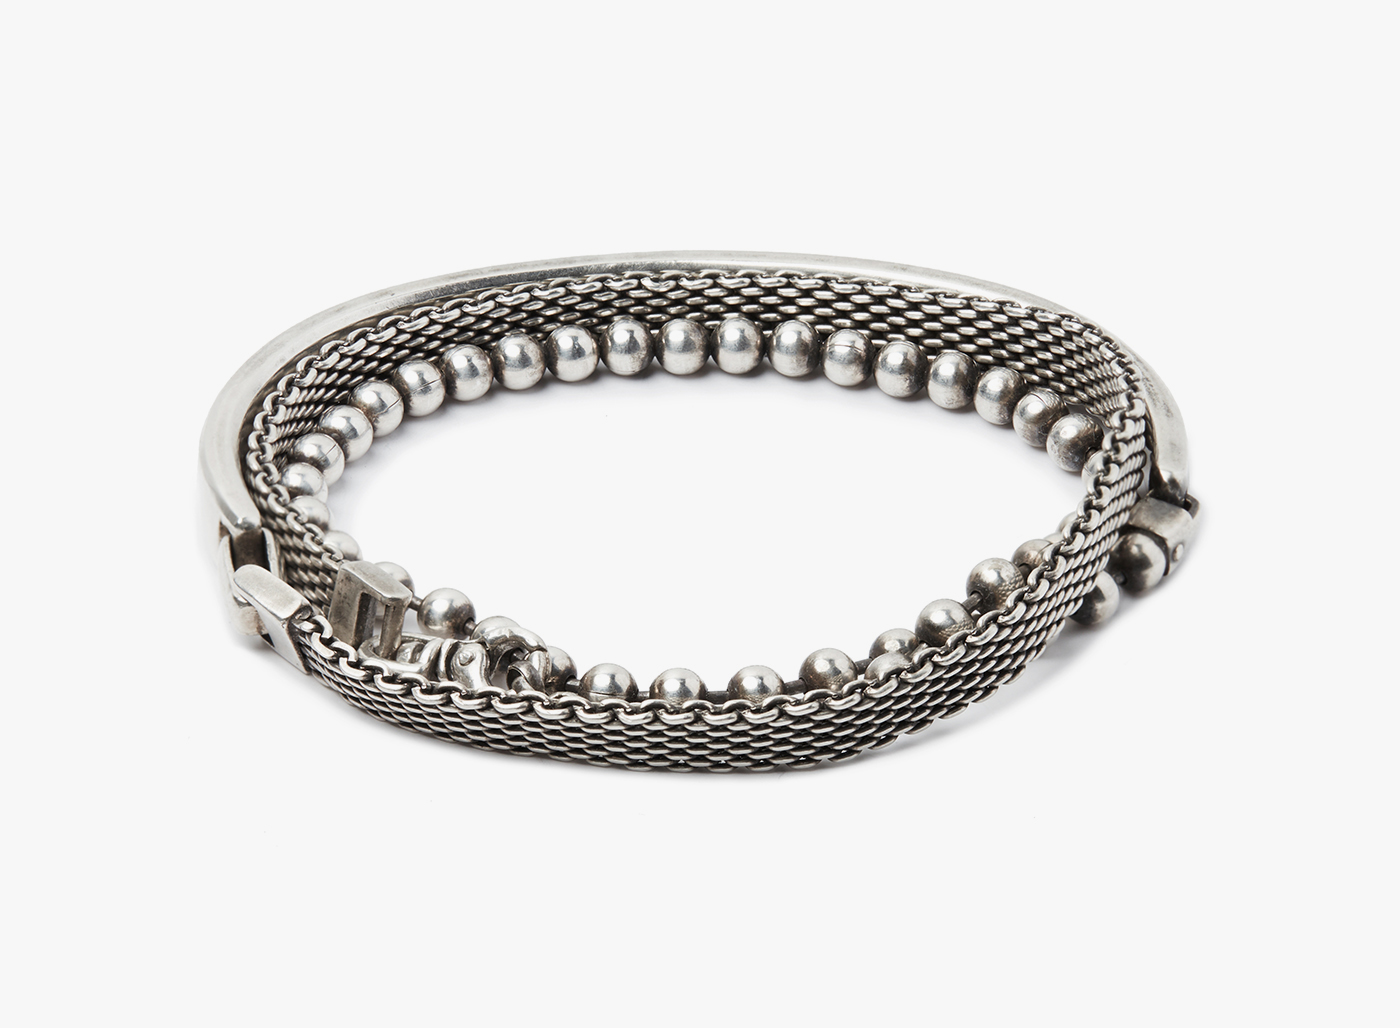 Image of 3 Wrap- Cuff to Medium Mesh/ Round Cable Chain Bracelet